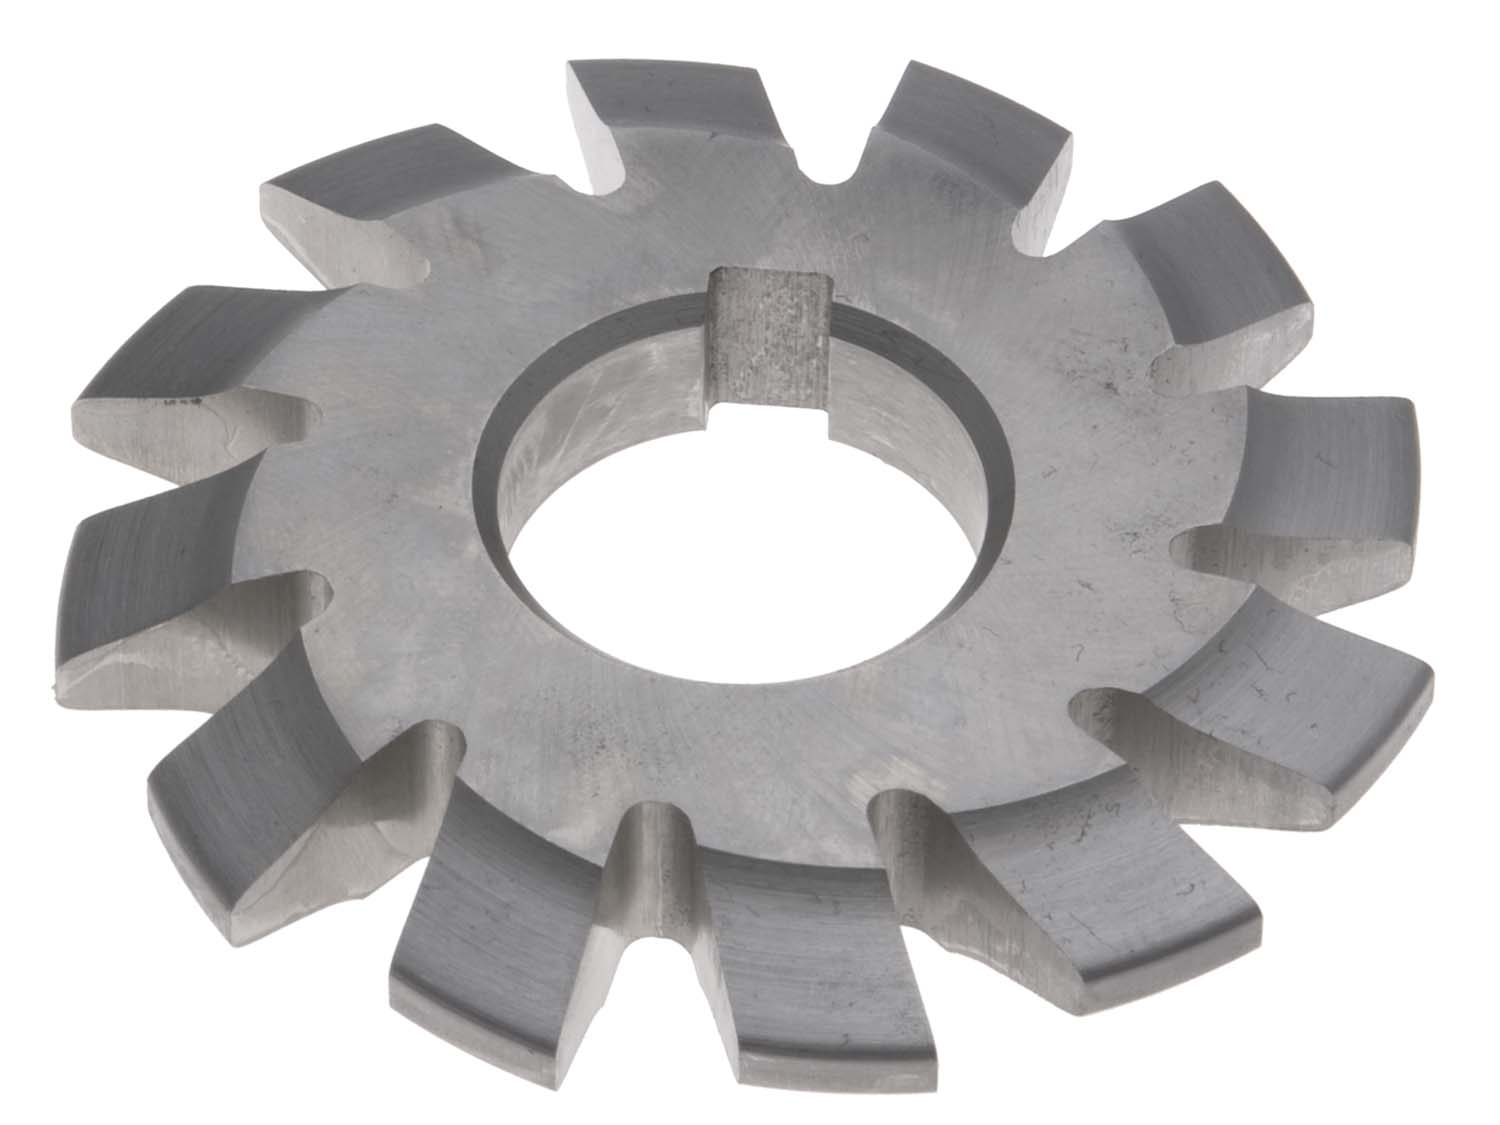 11 Diametral Pitch # 6 Involute Gear Cutter - 1 Inch ID - 14-1/2 Degree Pressure Angle